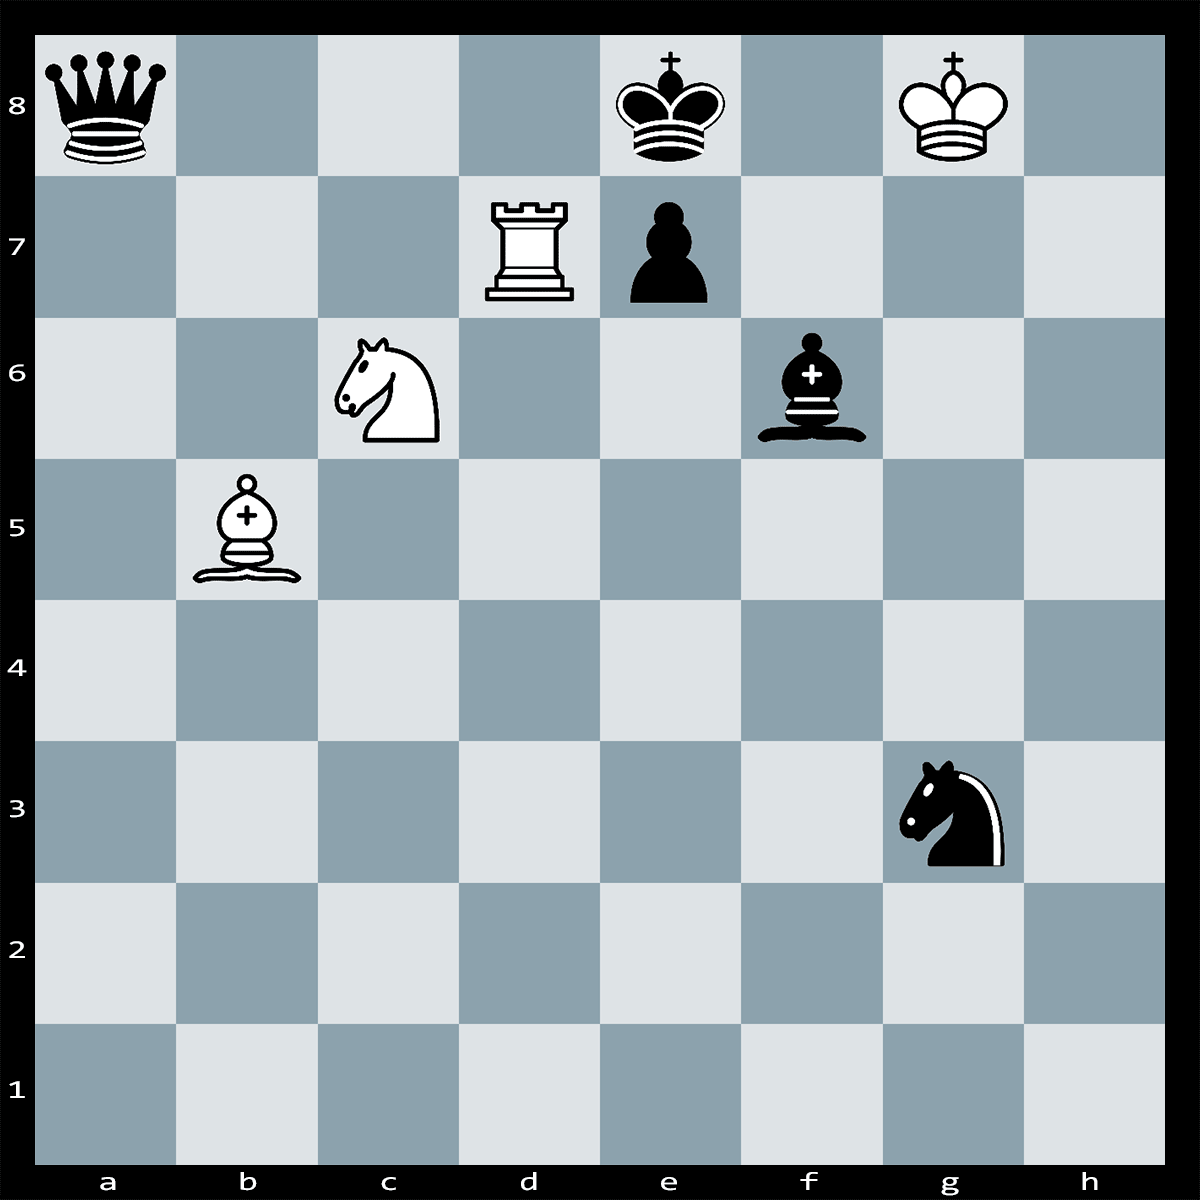 Chess Puzzle #152 - Find checkmate in four moves, white to play.